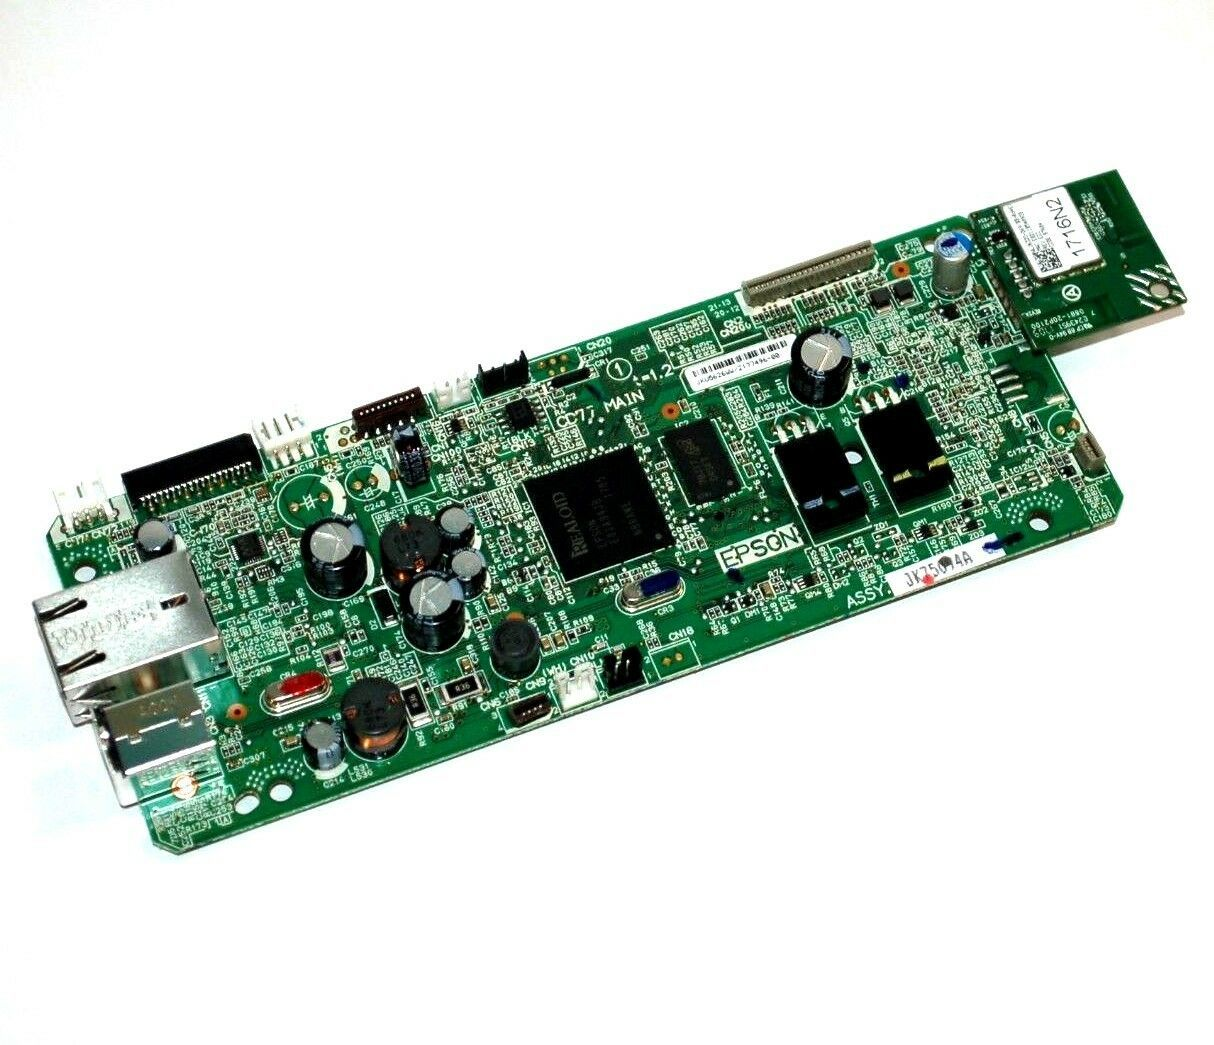 Primary image for Epson WorkForce WF-2760 Printer Main Logic Board / Formatter WF2760